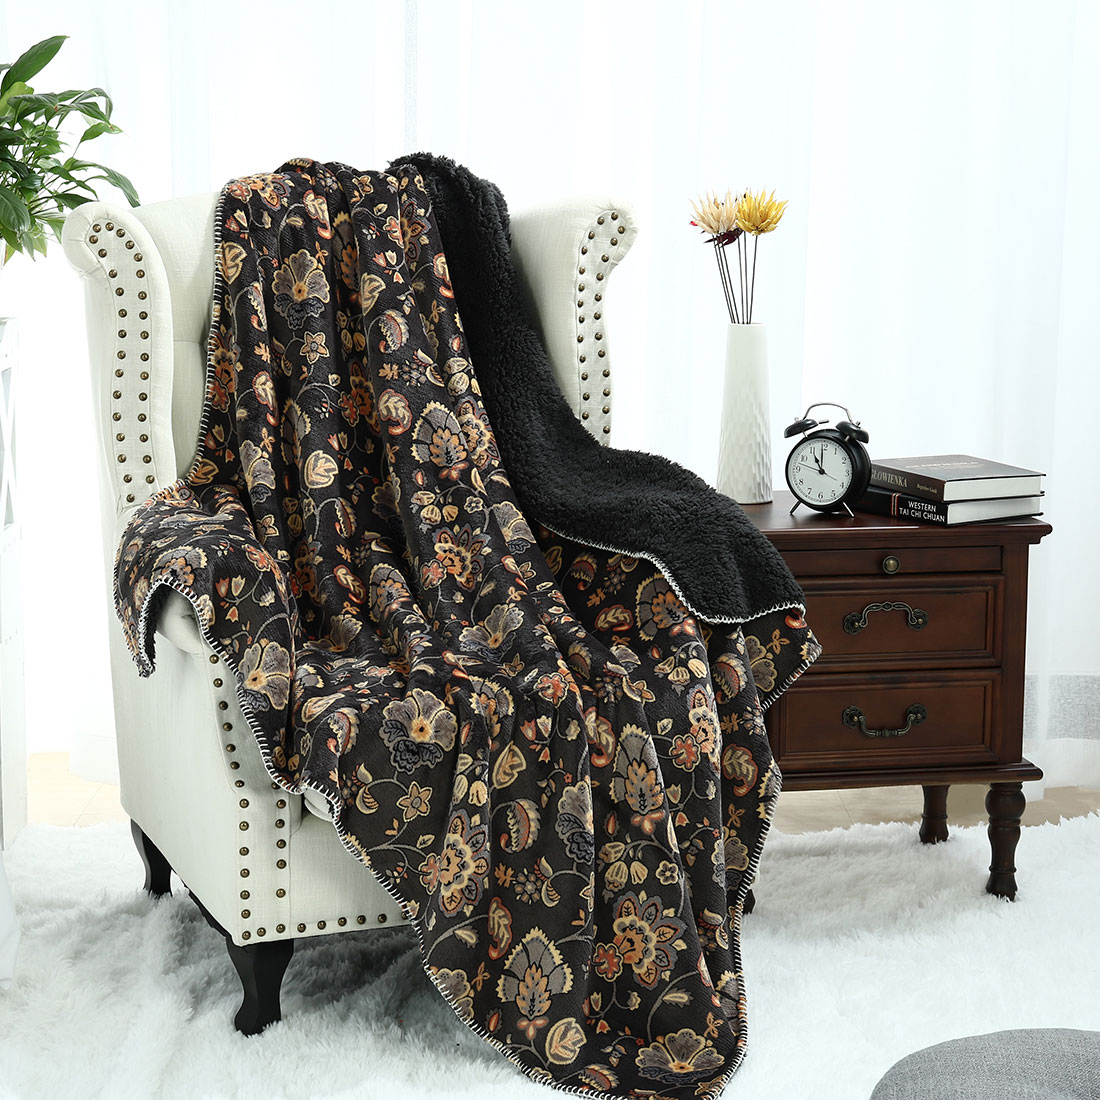 """Floral Printed Throw Blanket 50"""" x 60"""" Plush Fleece Blanket for Couch Sofa"""